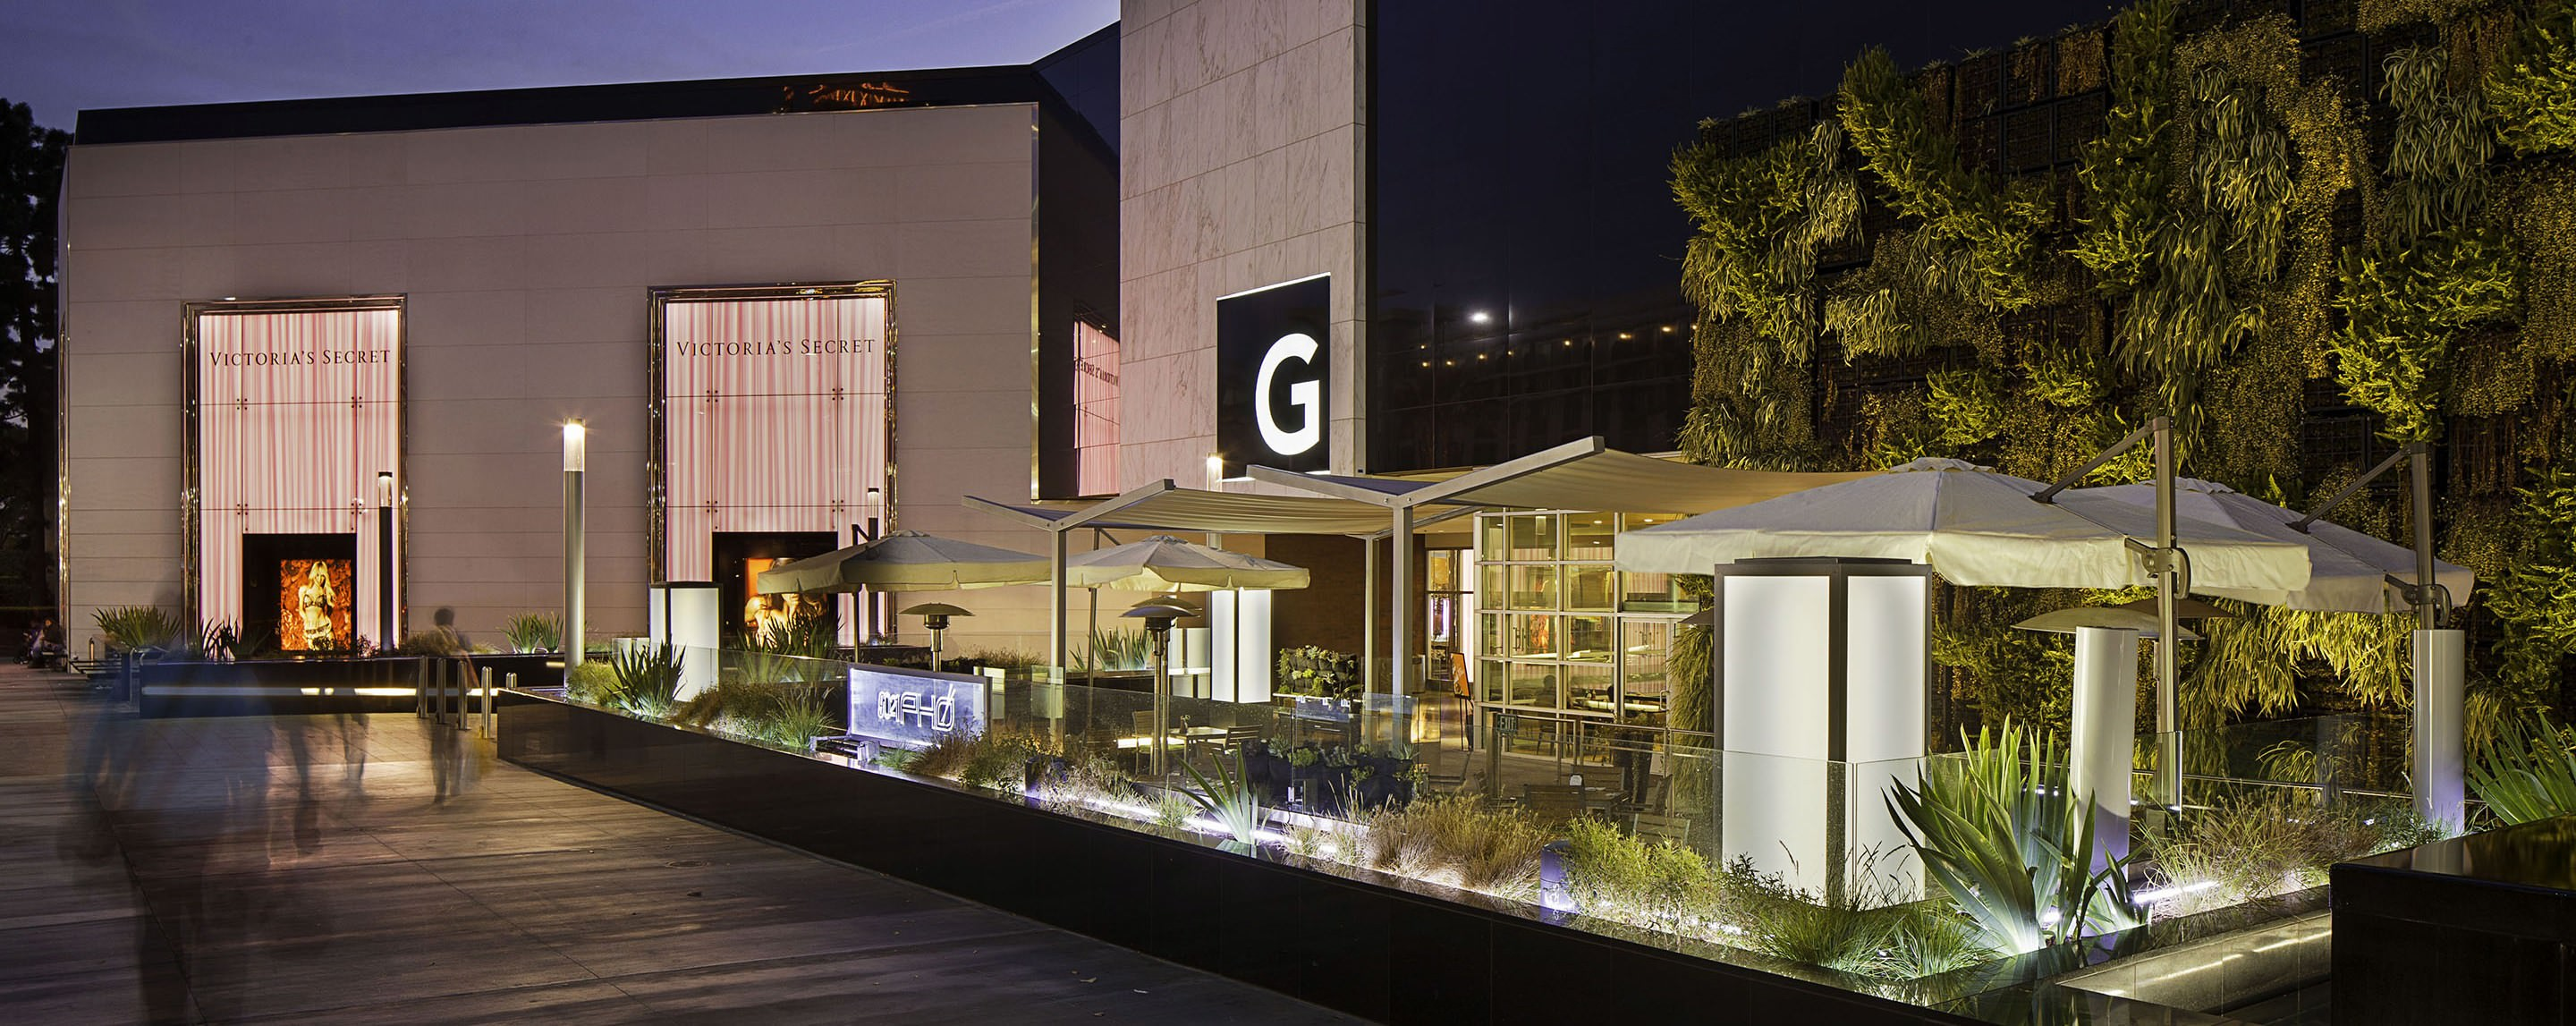 At dusk, shoppers walk past a living wall, lush landscape and outdoor seating at the entrance of Glendale Galleria.